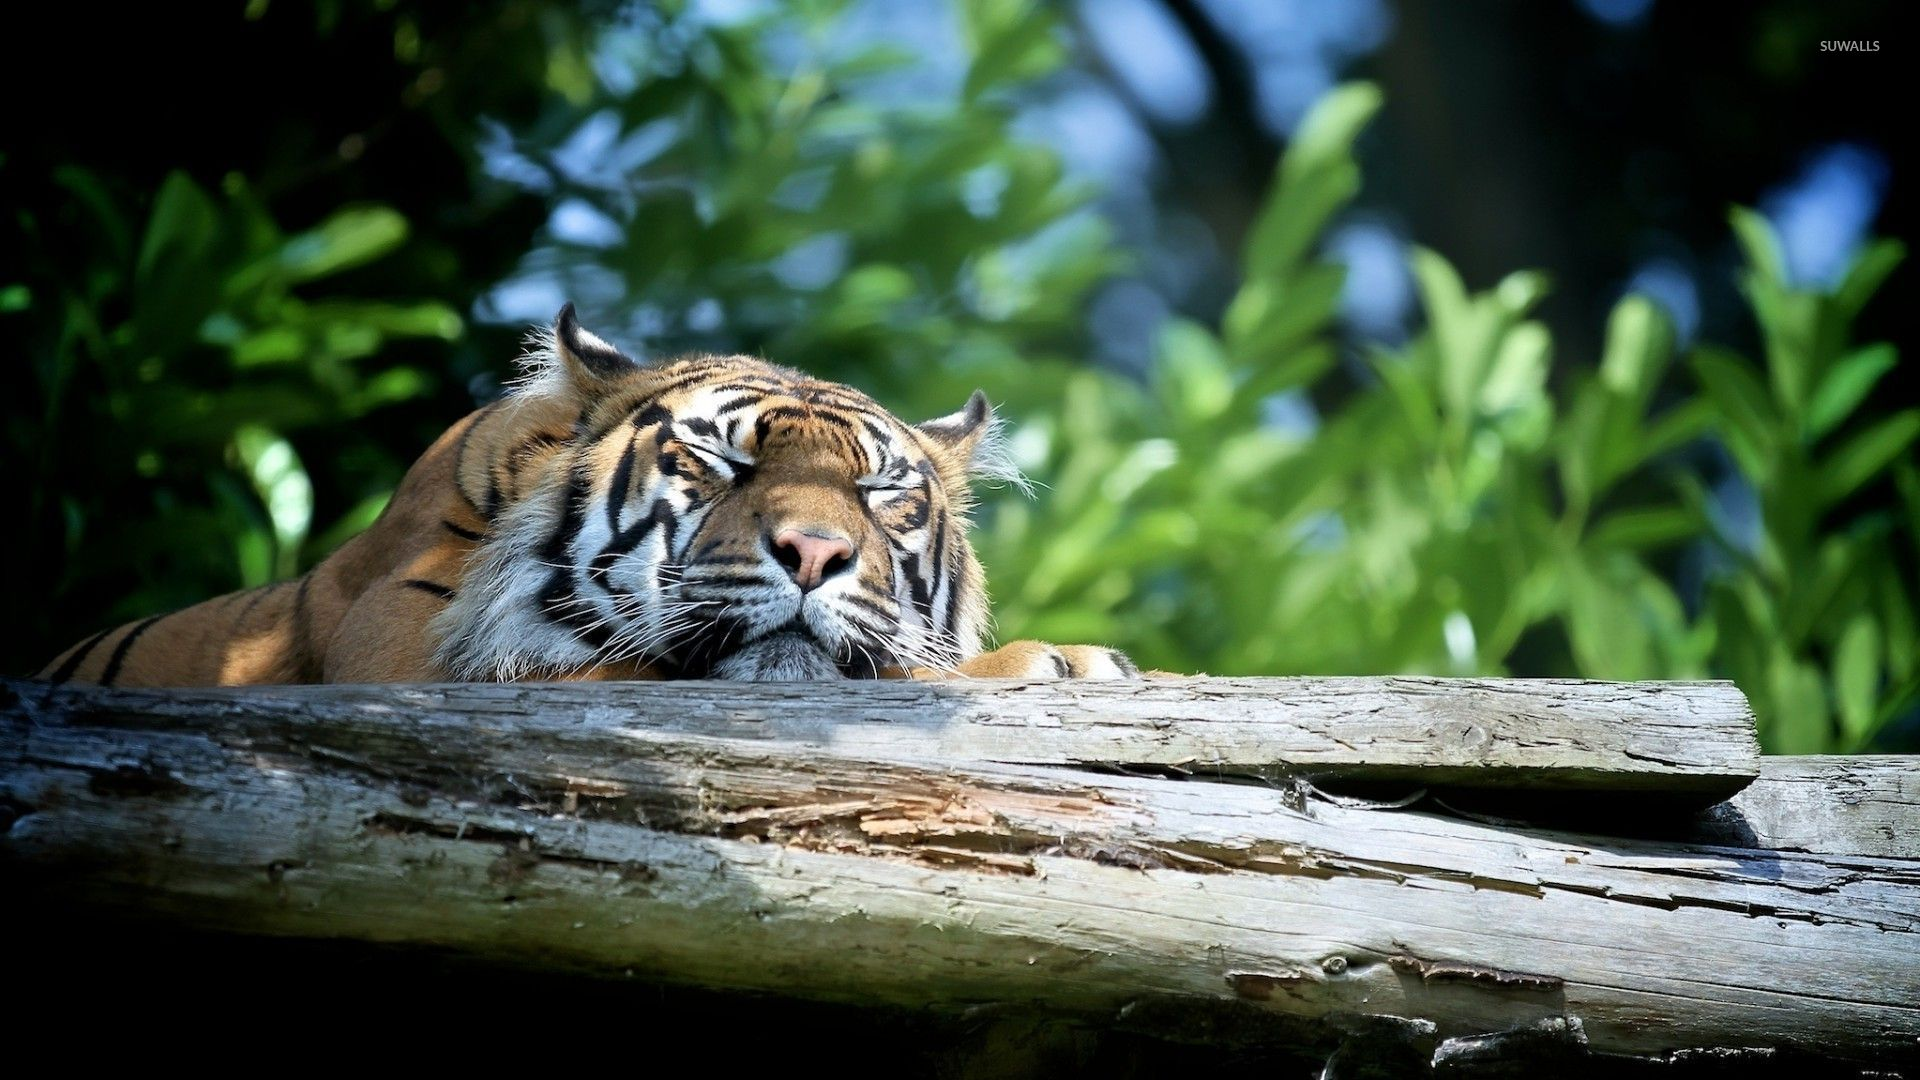 sleeping tiger wallpaper - animal wallpapers - #53227